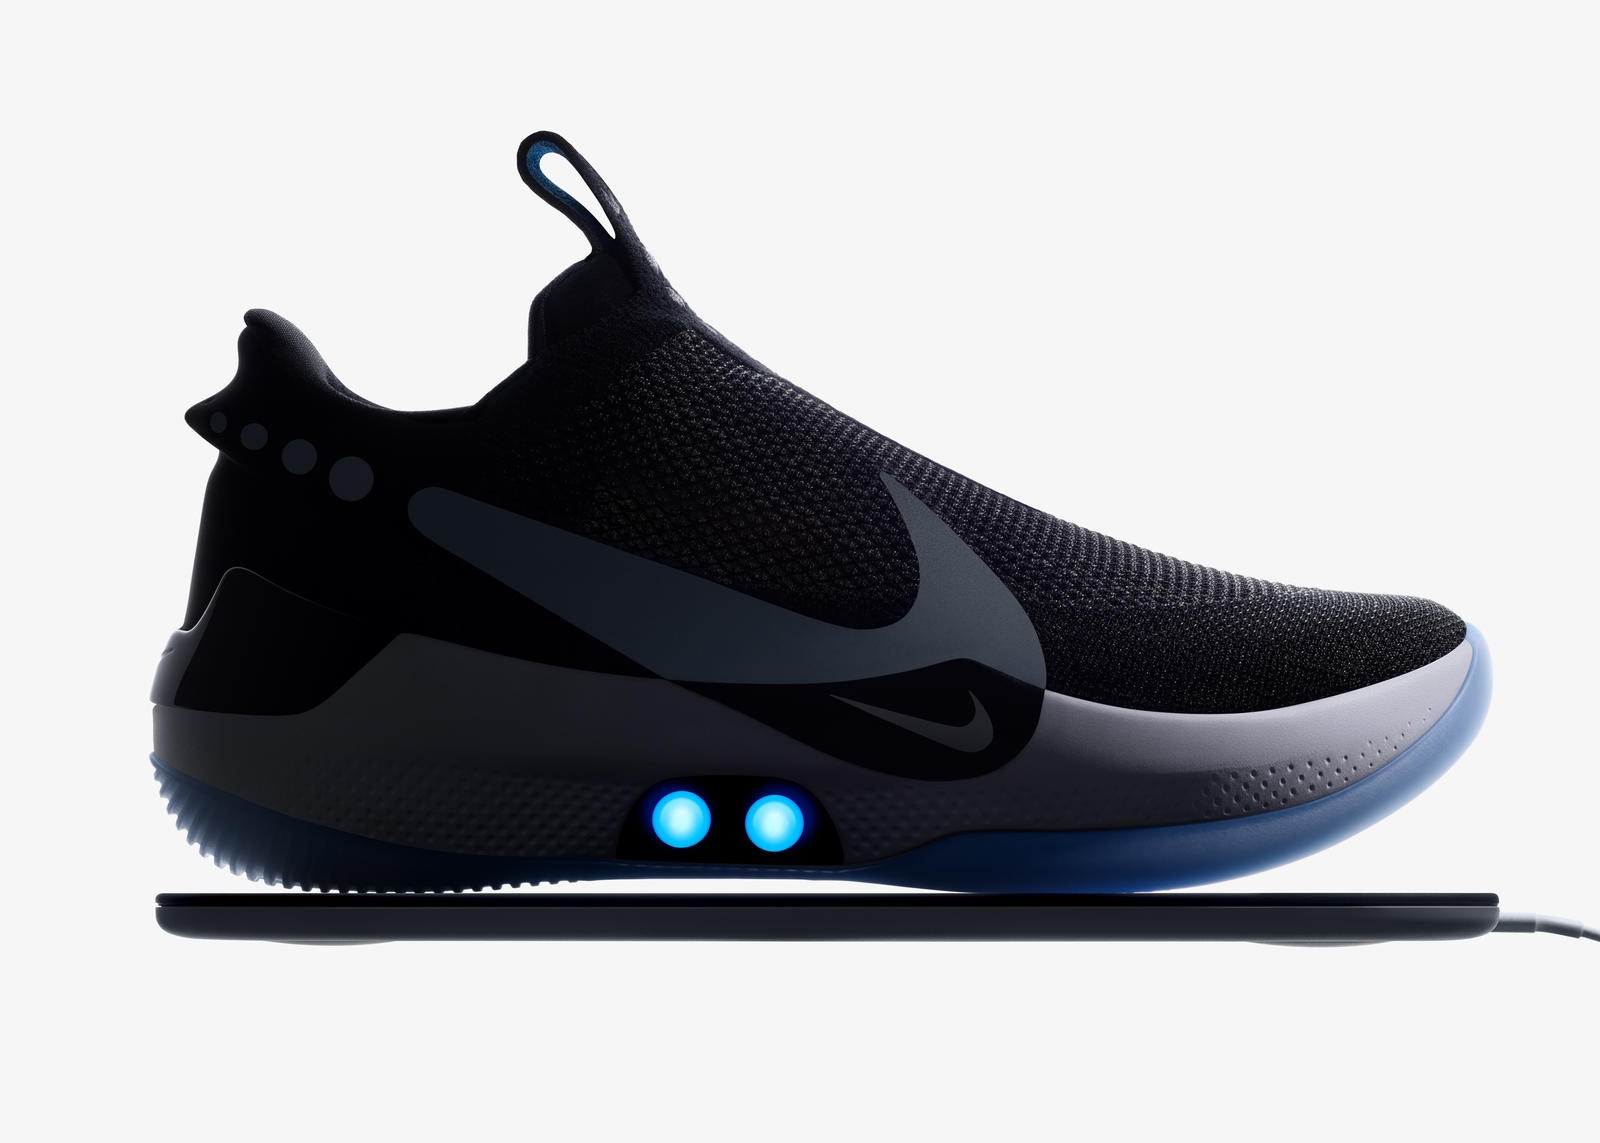 Nike Adapt BB Side